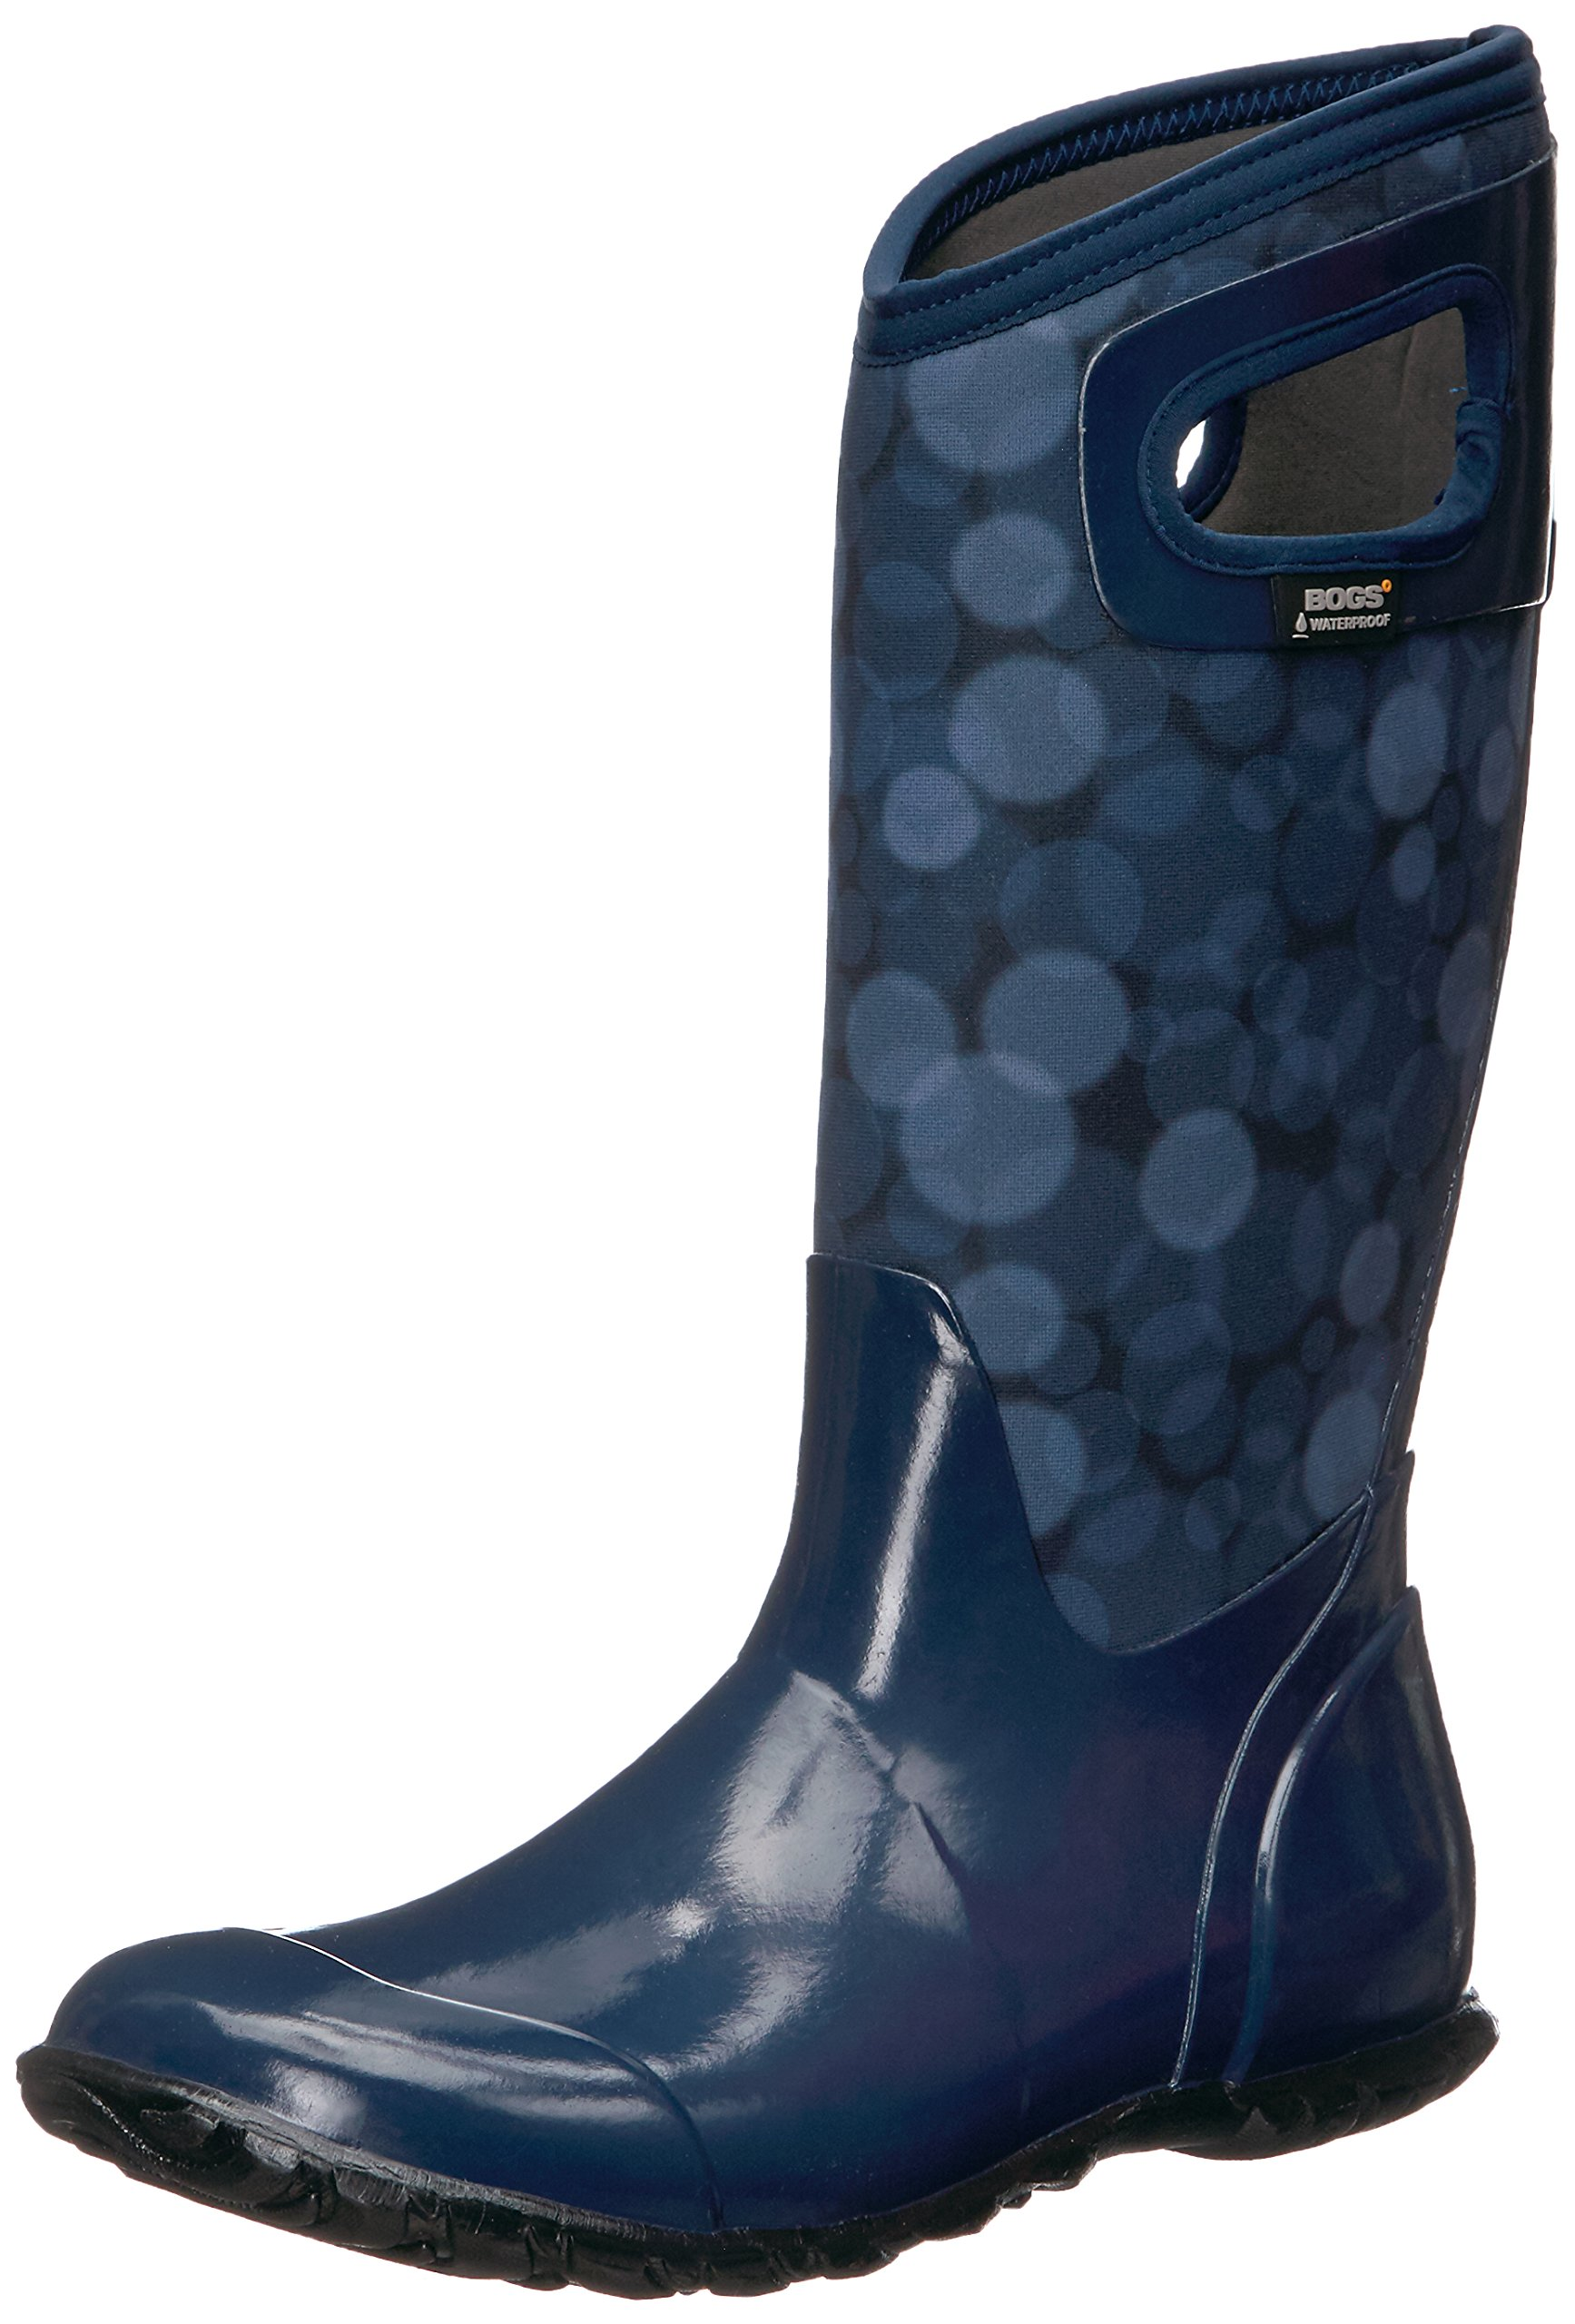 Bogs Women's North Hampton Rain Snow Boot, Dark Blue/Multi, 8 M US by Bogs